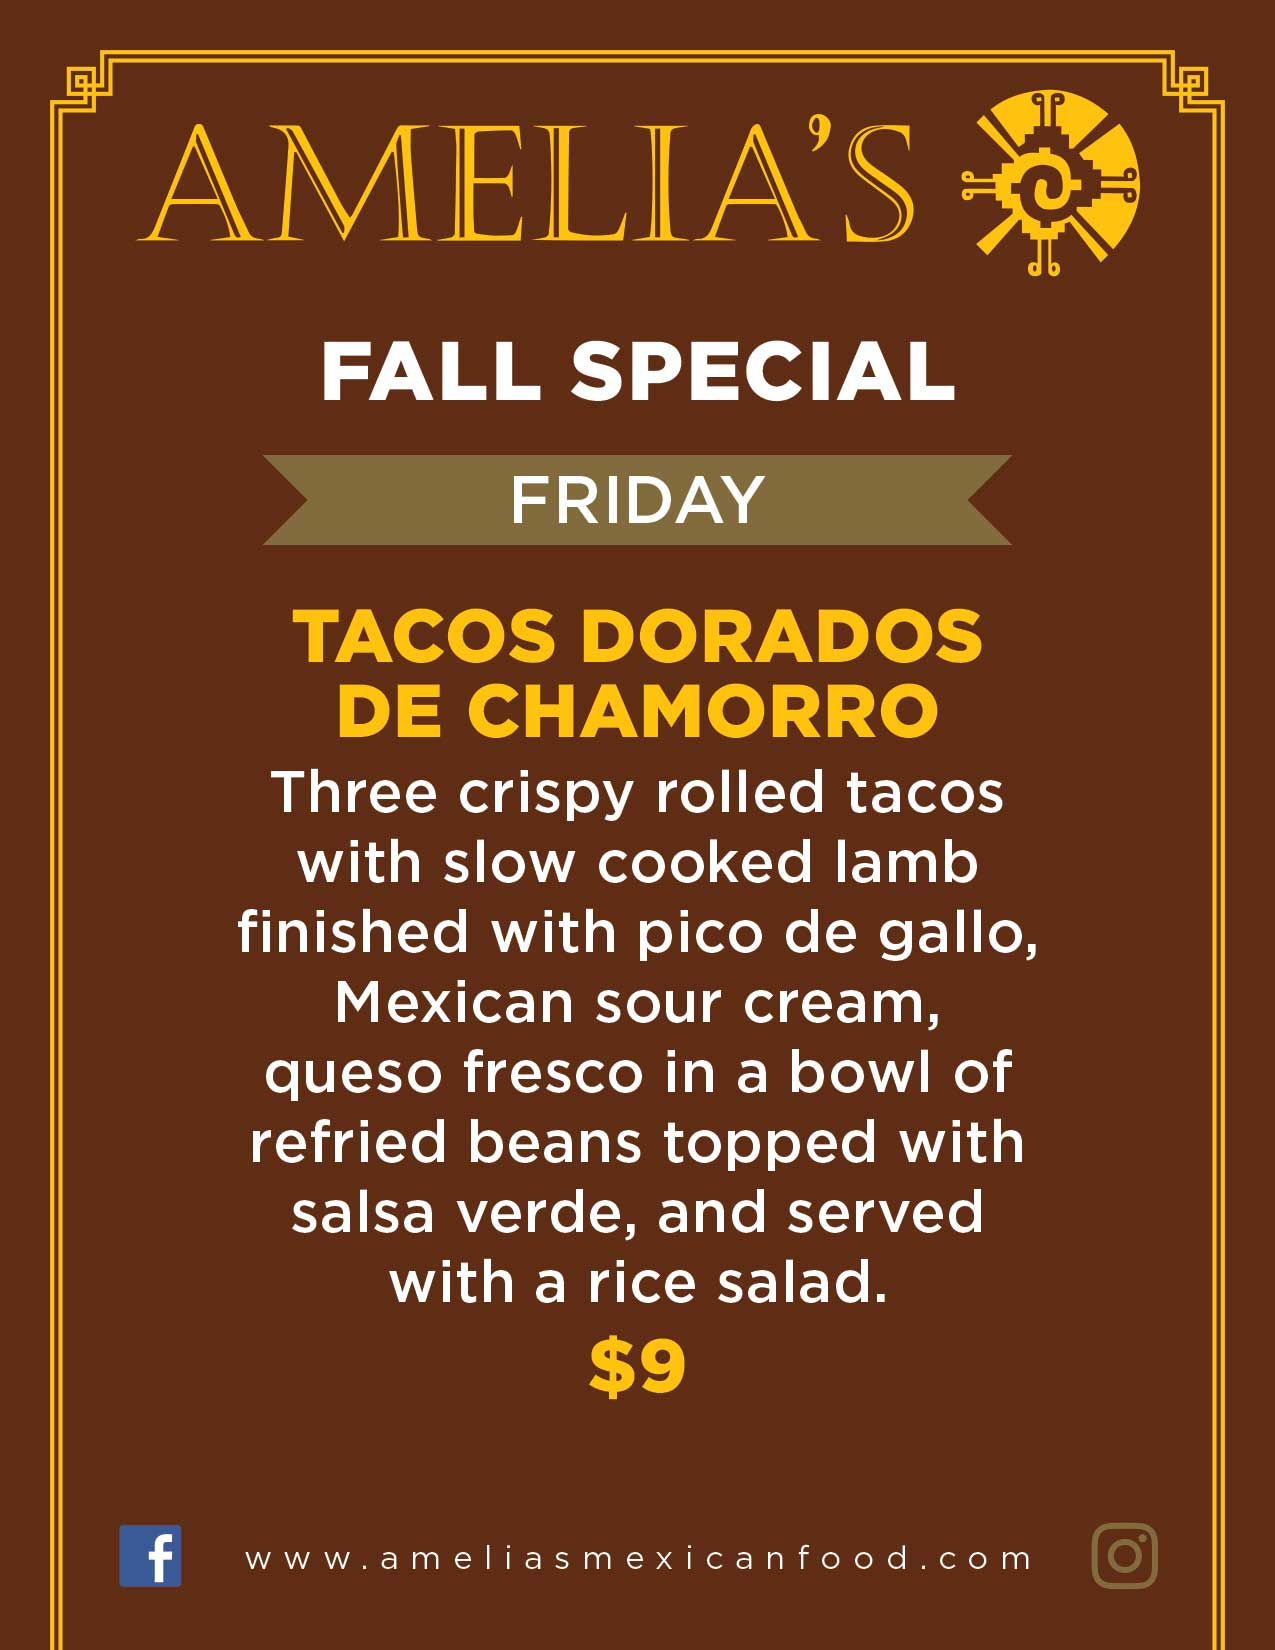 image of friday specials